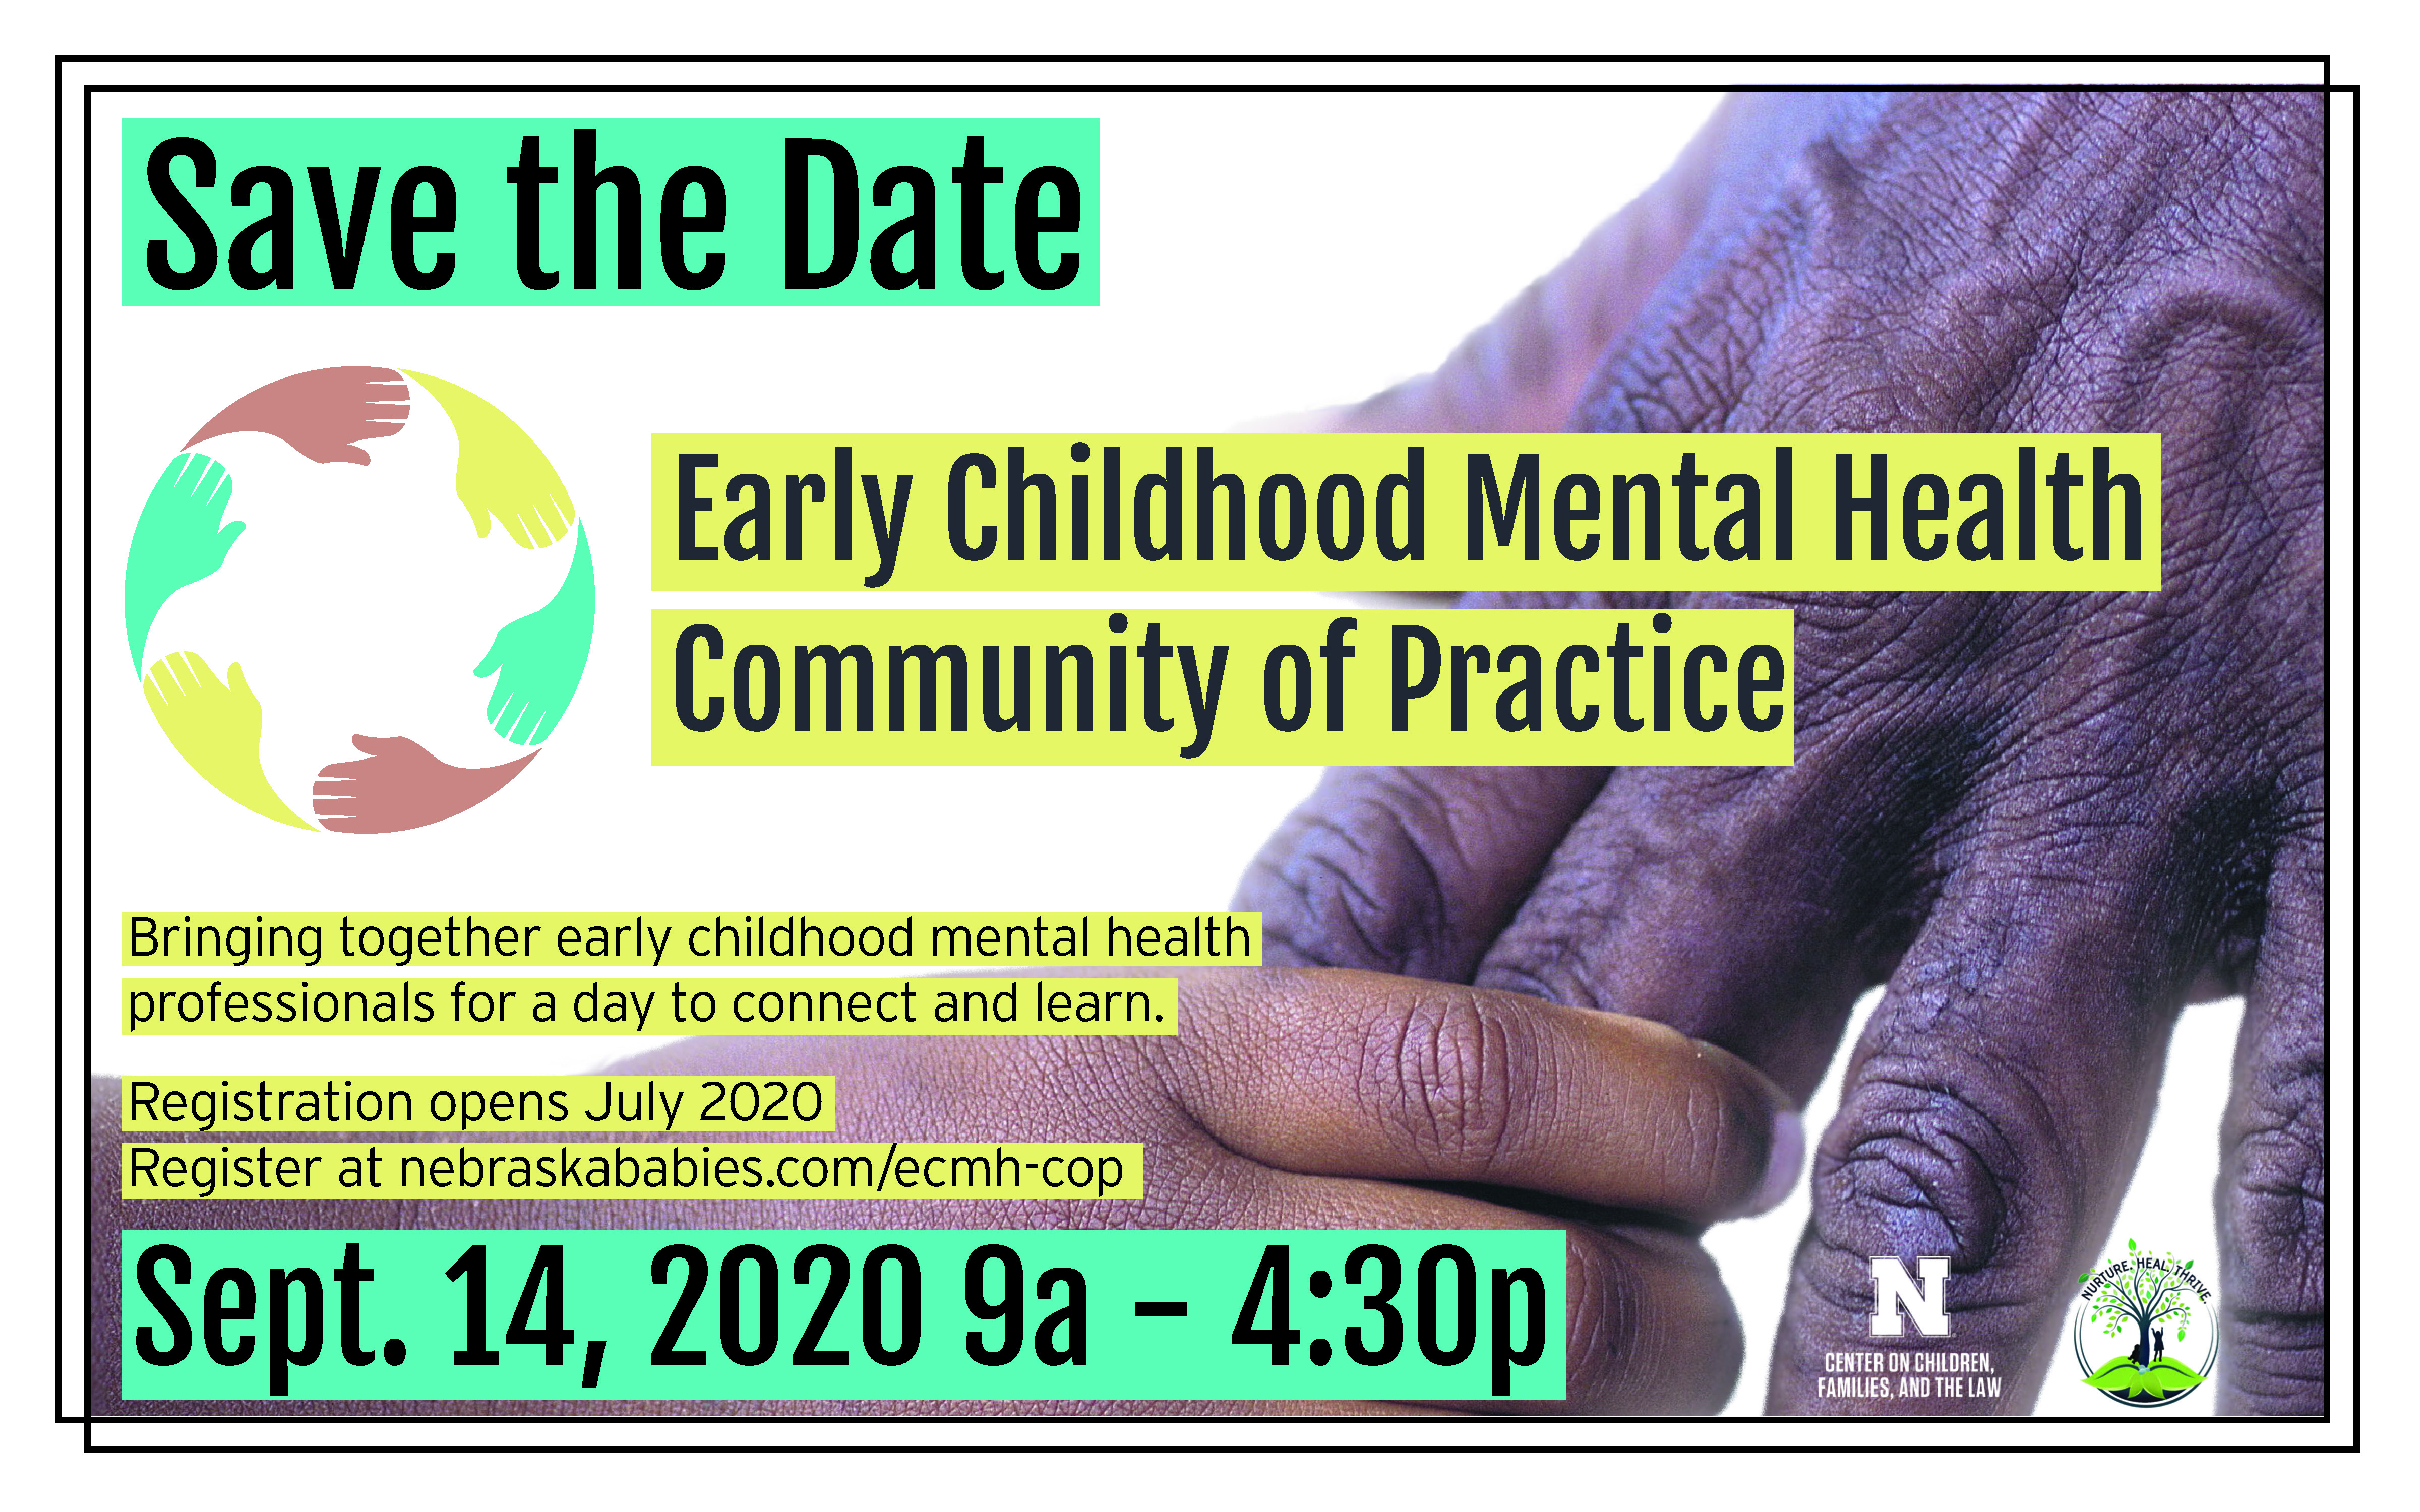 ECMH Community of Practice Save the Date